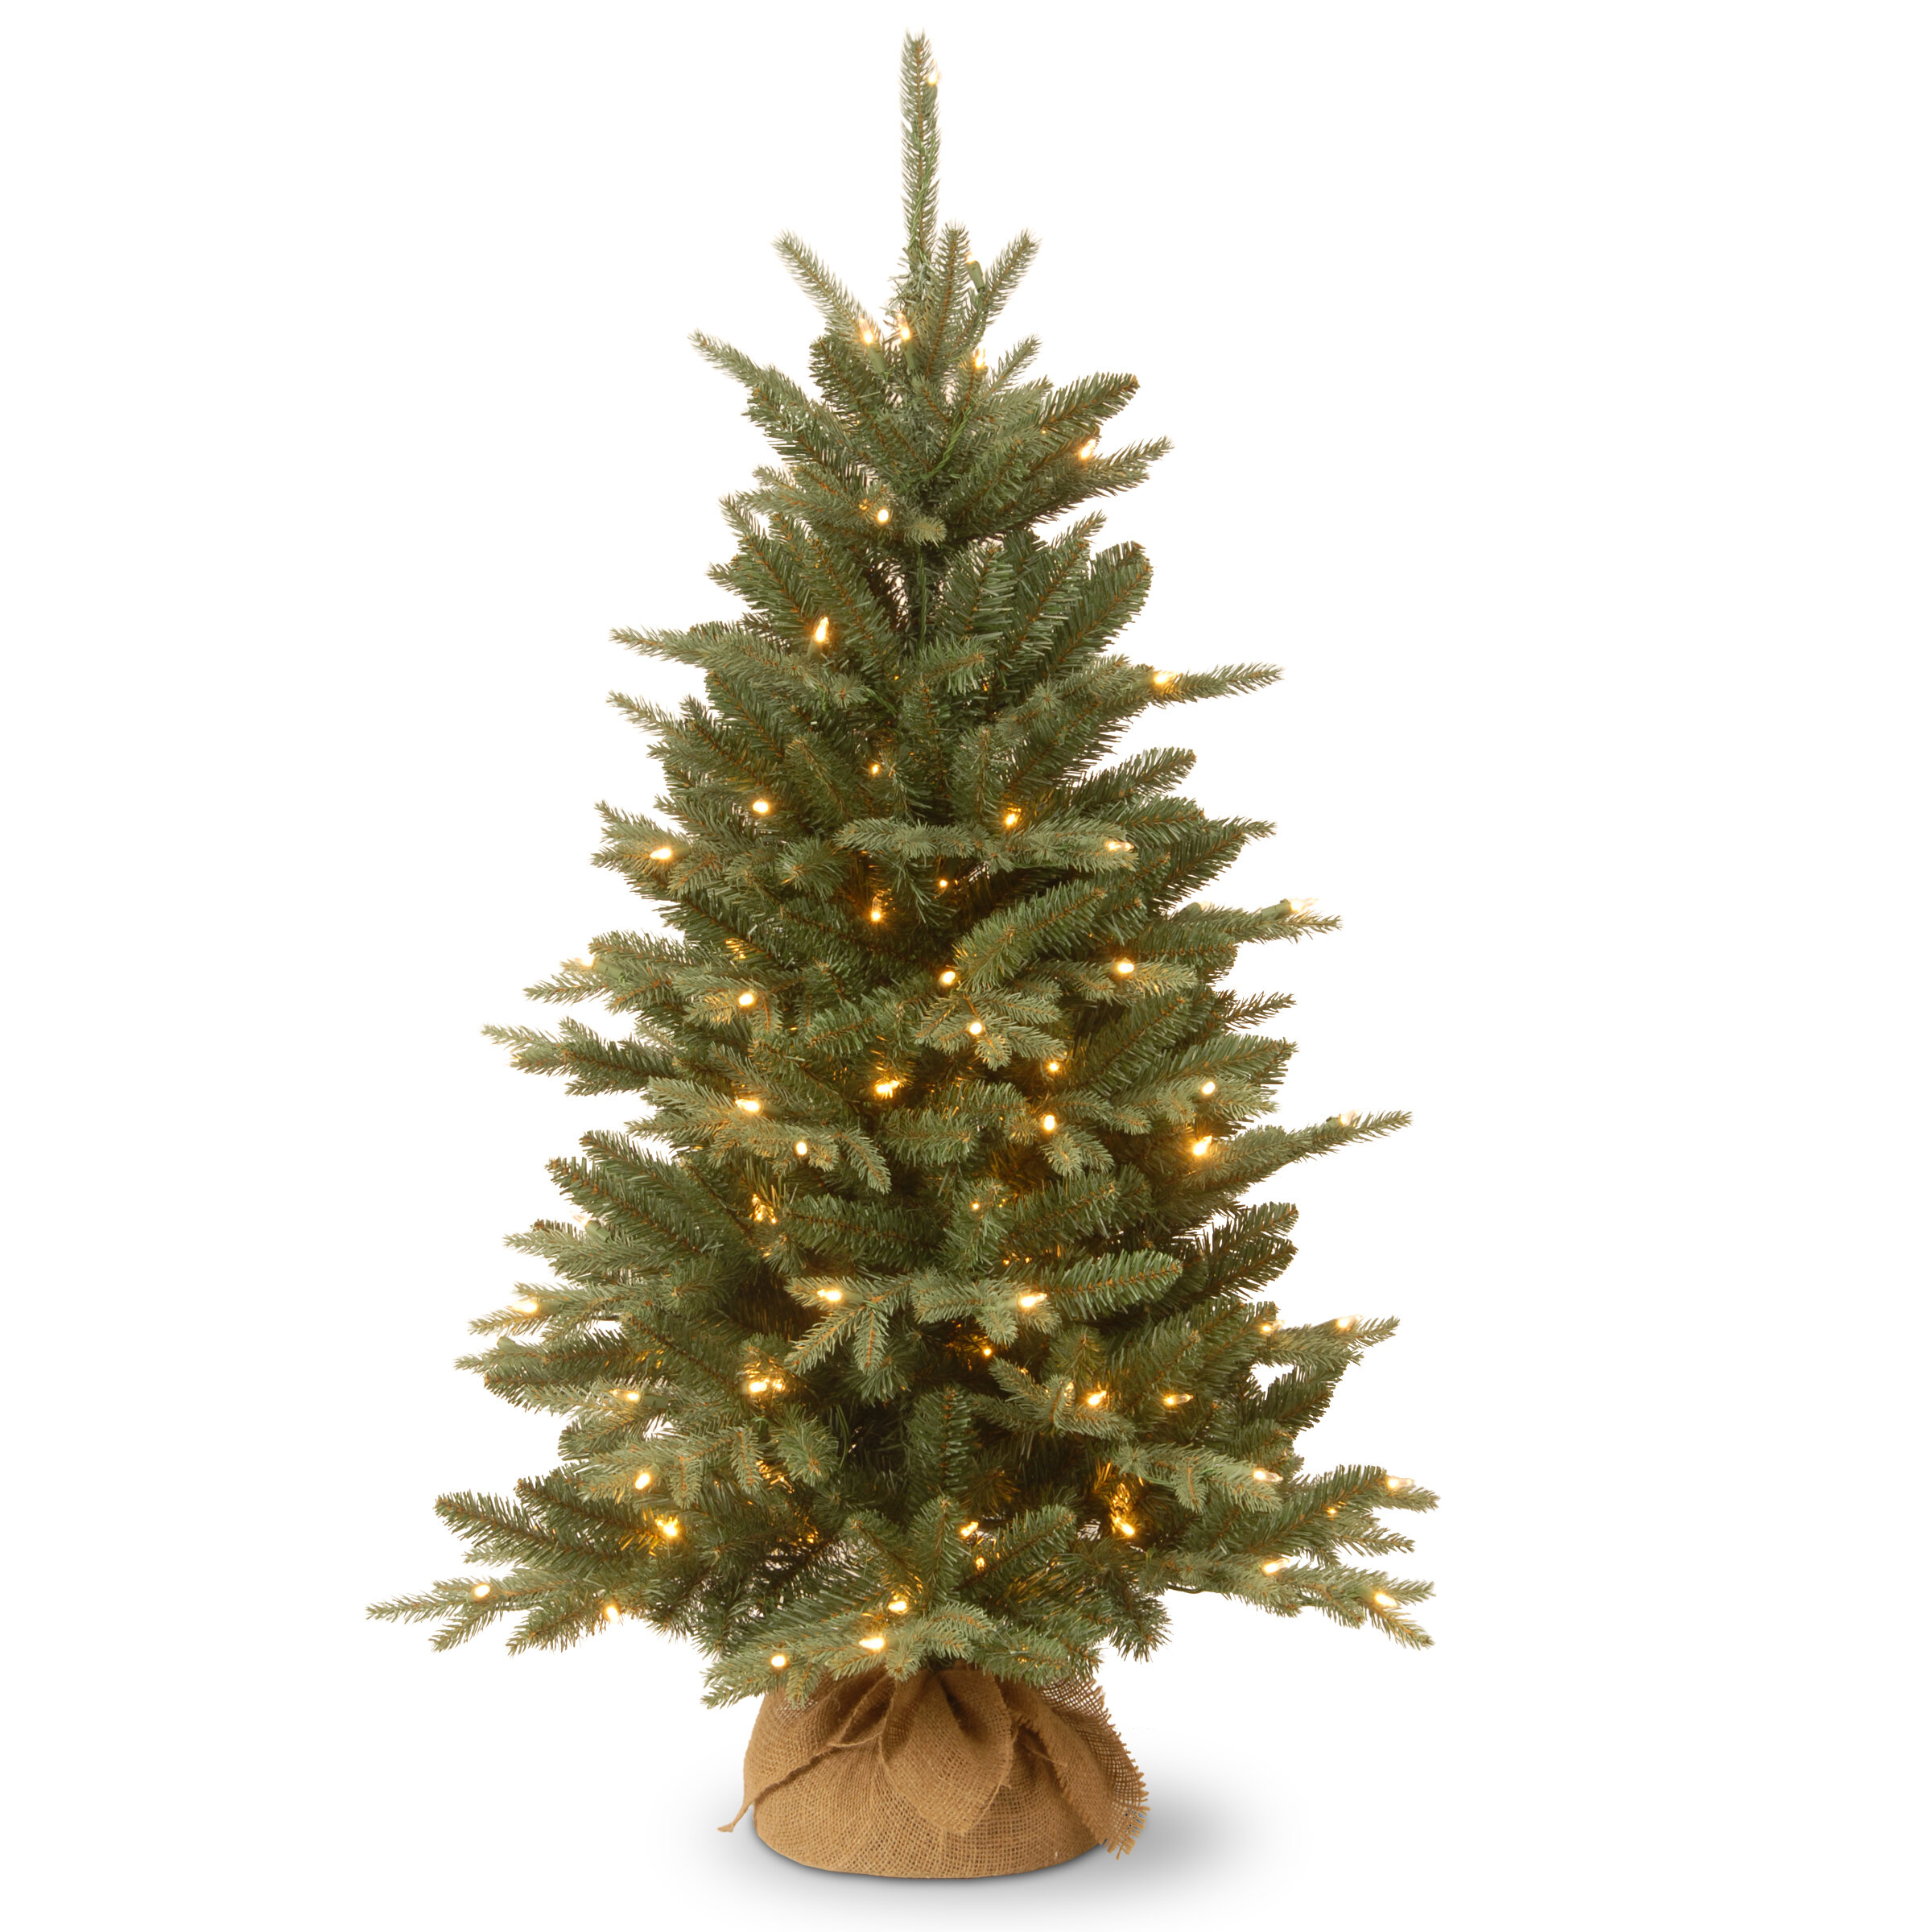 c23e8b7ea54c0 National Tree Co. 4  Green Pine Trees Artificial Christmas Tree with 150  Clear Lights